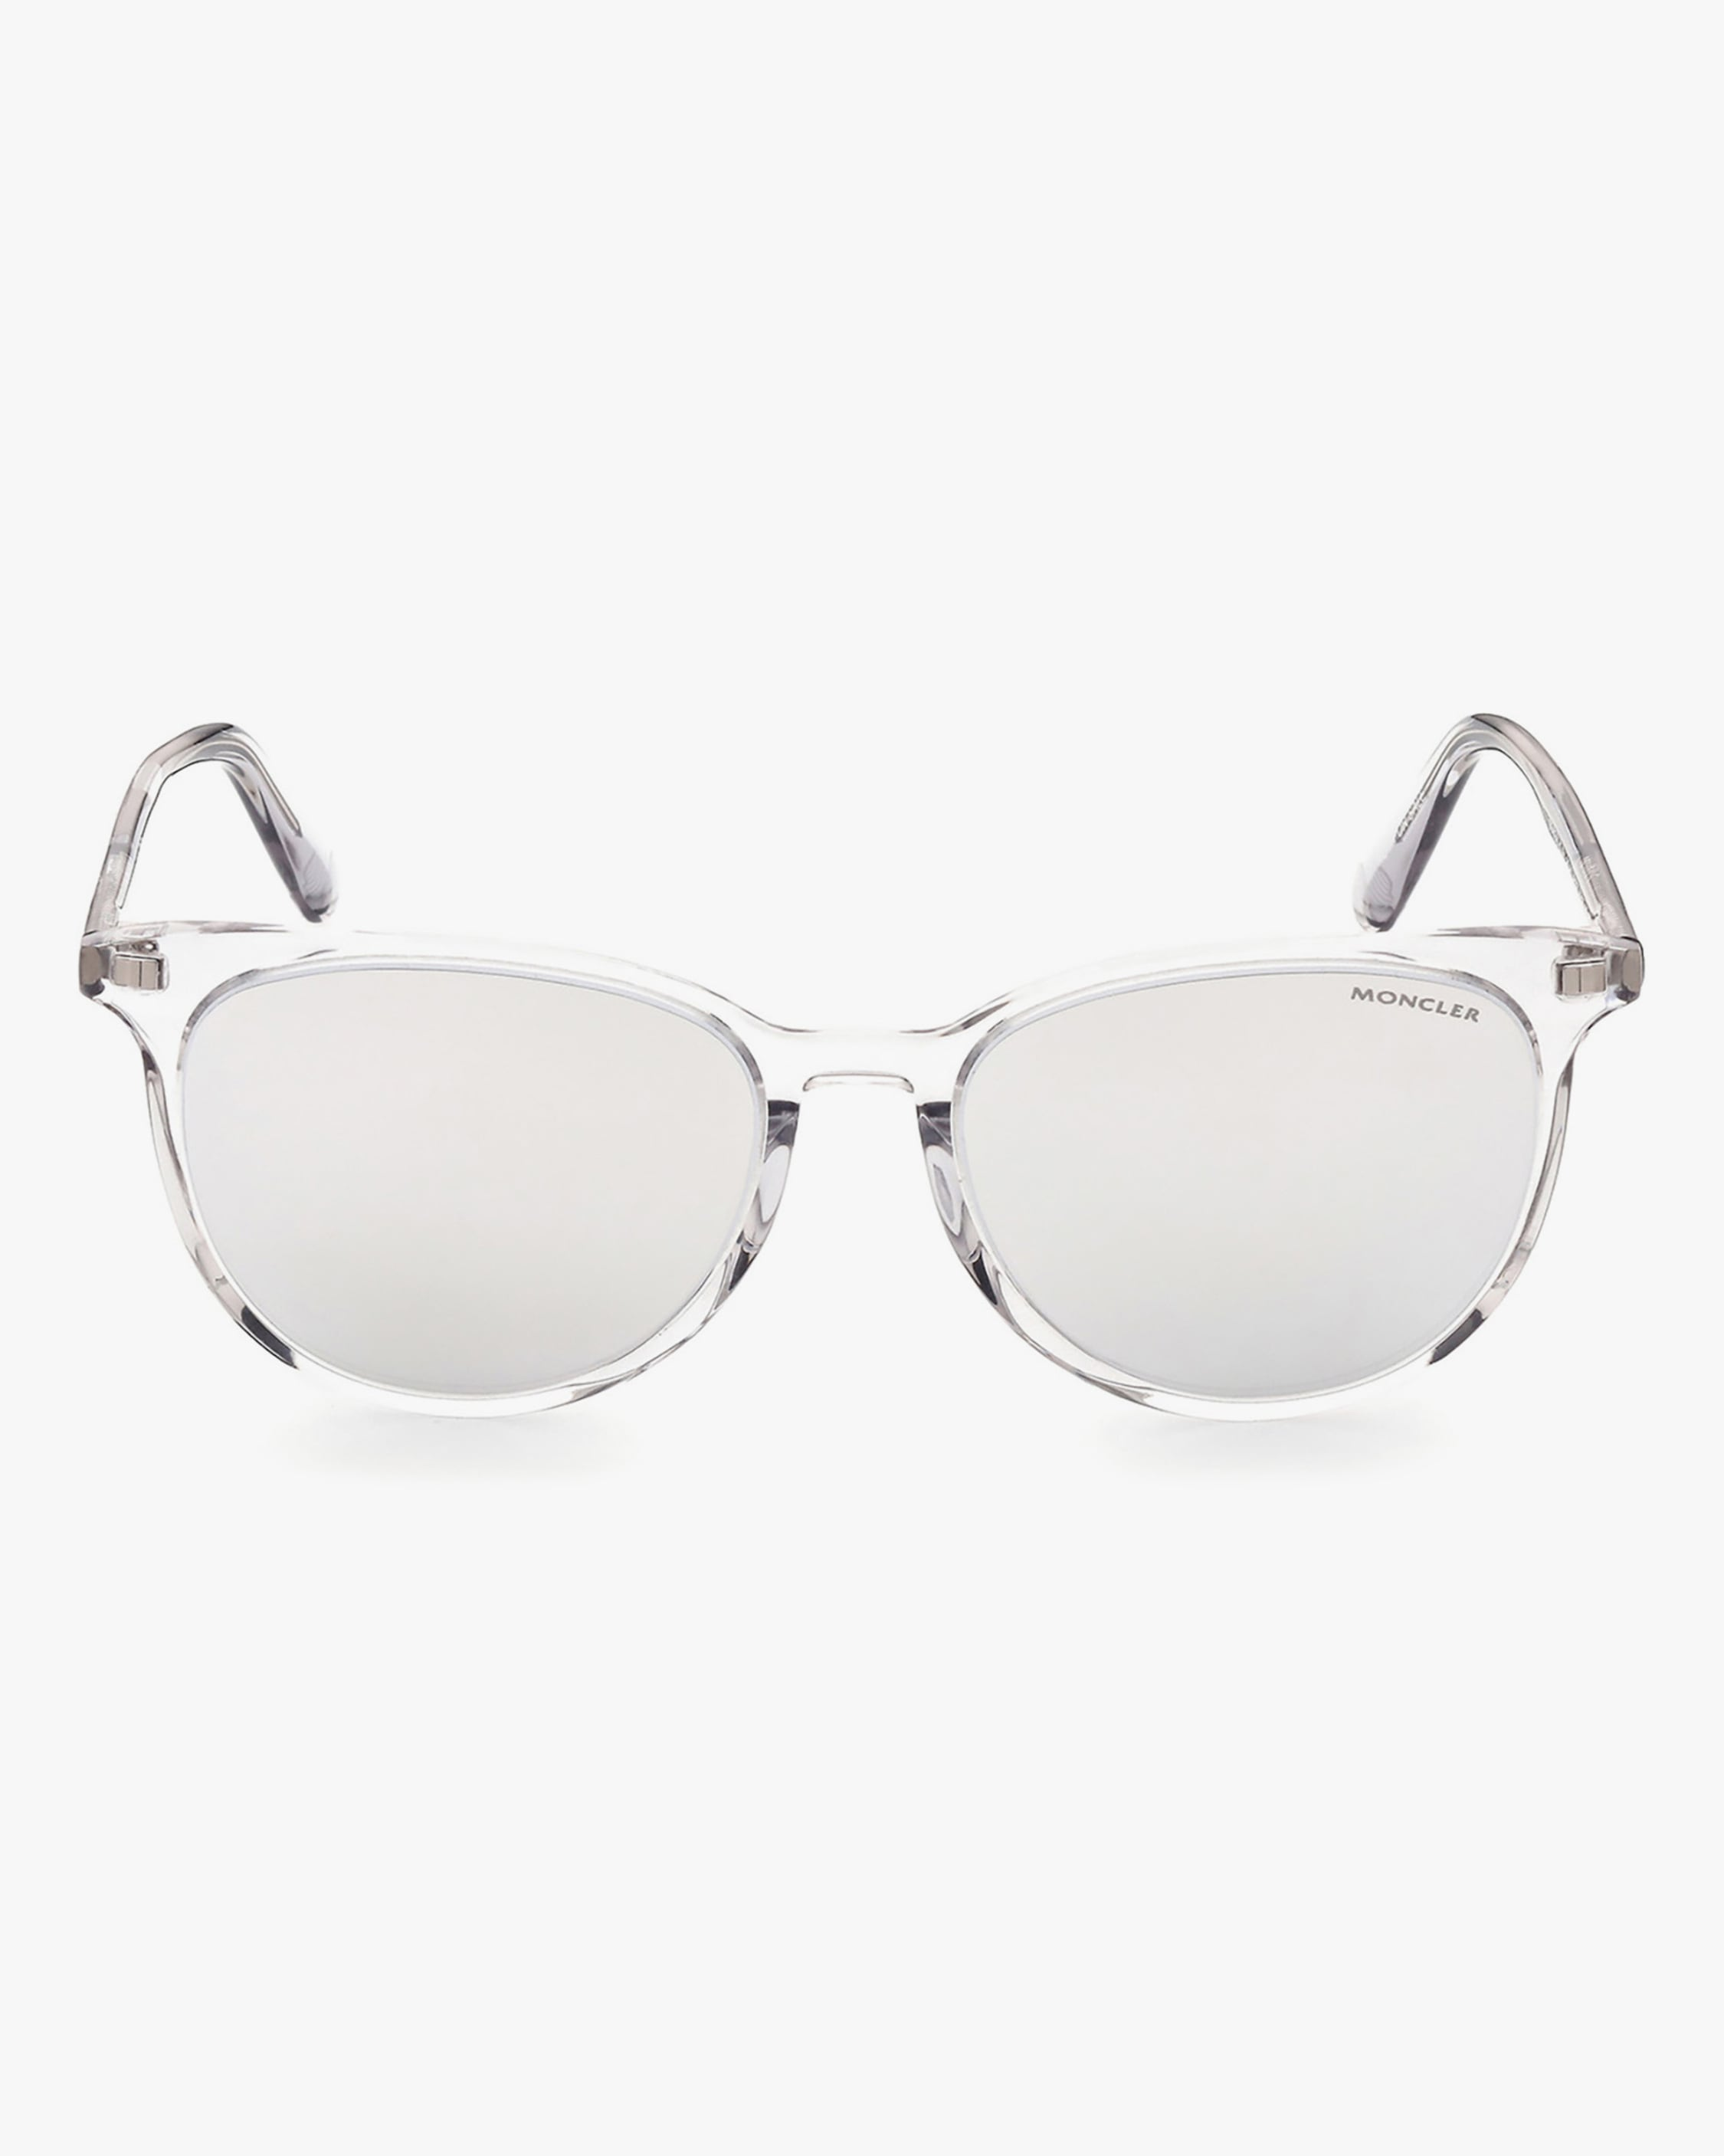 Moncler Crystal Round Sunglasses 1